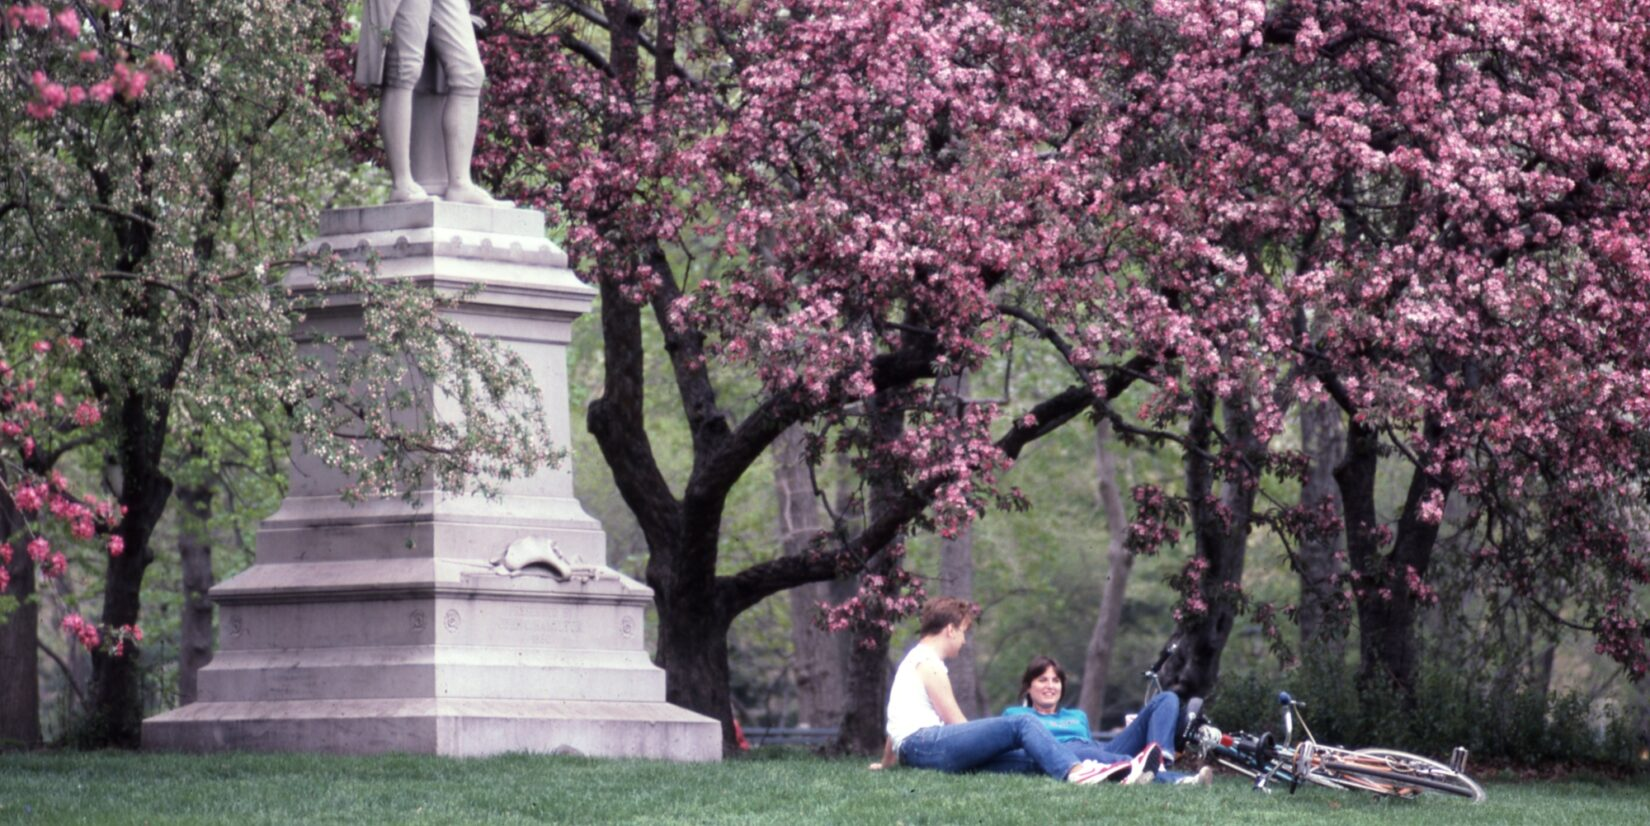 A couple relaxing on the grass beside the Pilgrim statue, with the background filled with cherry blossoms